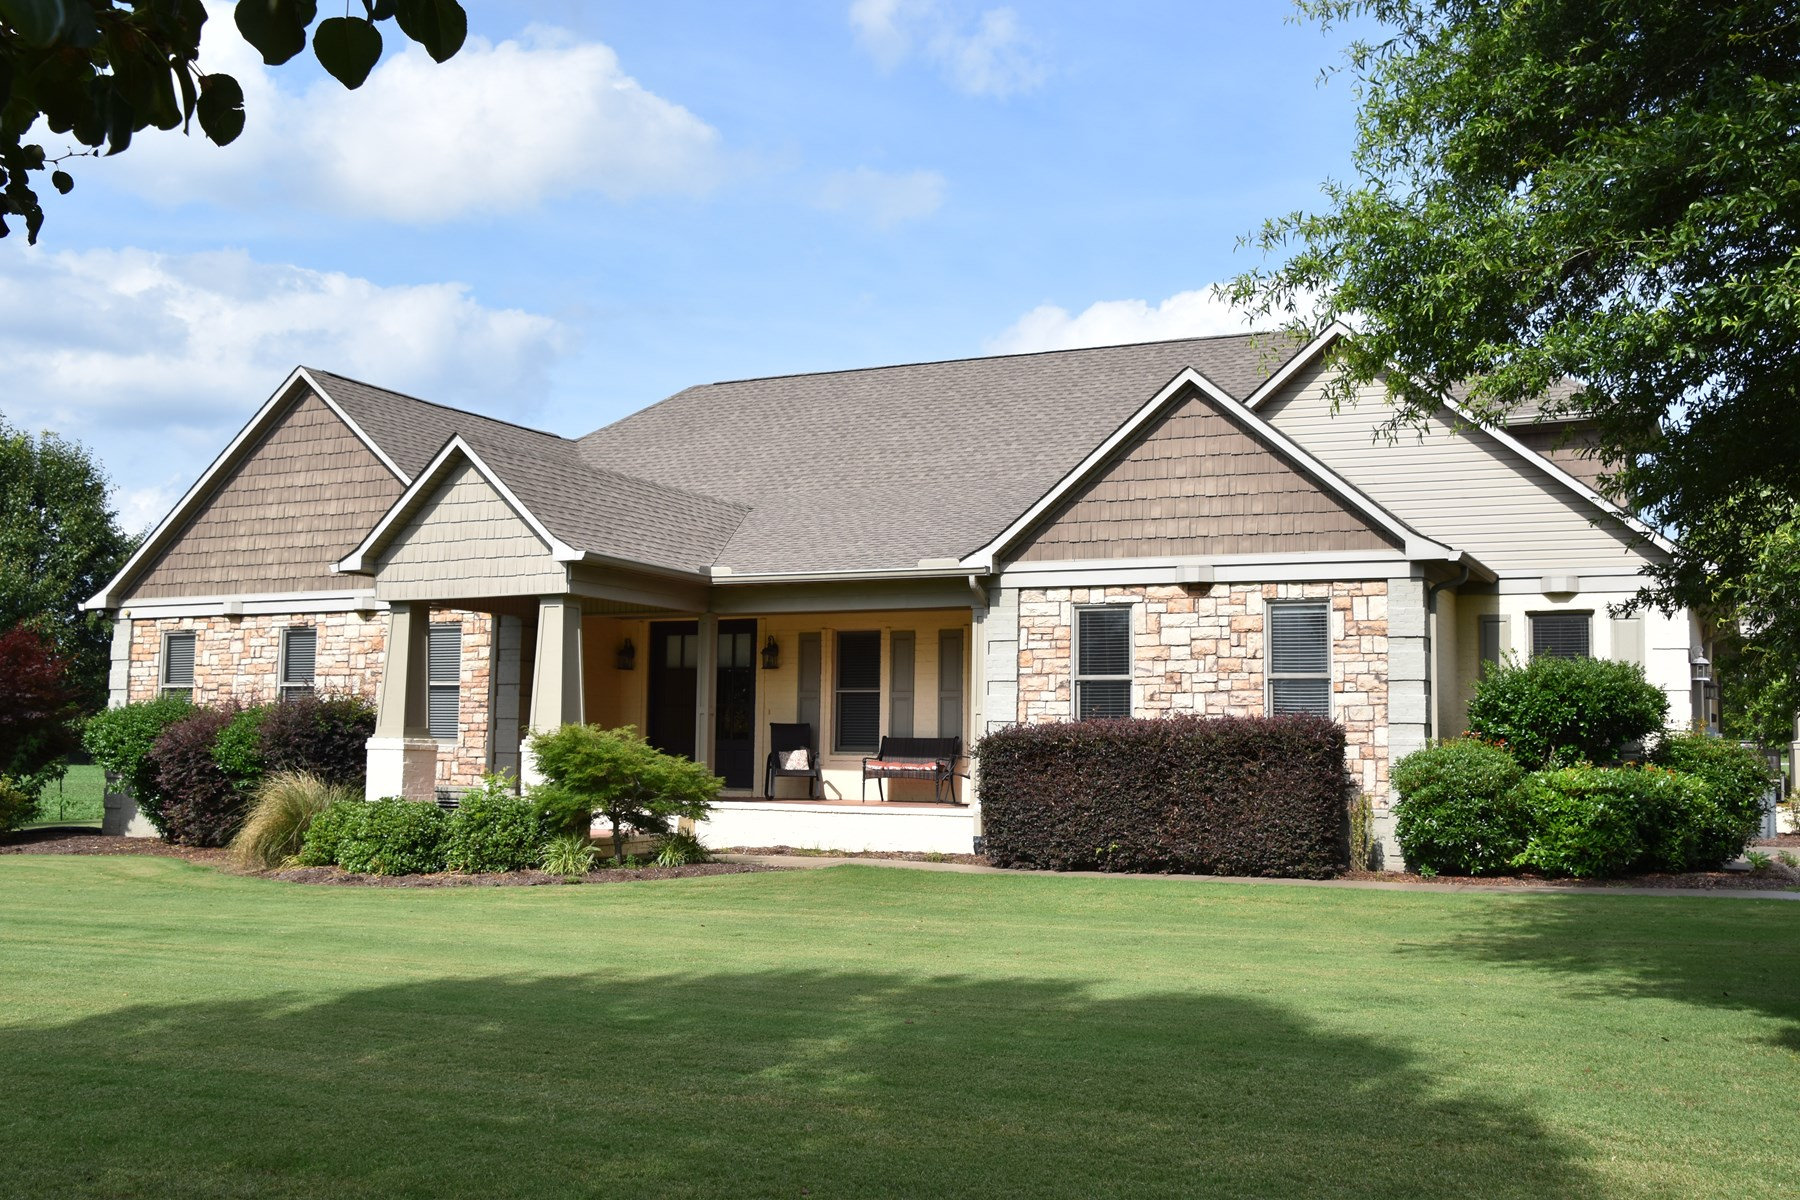 Lakefront Home for sale in Jackson TN Area with 50x80 shop!